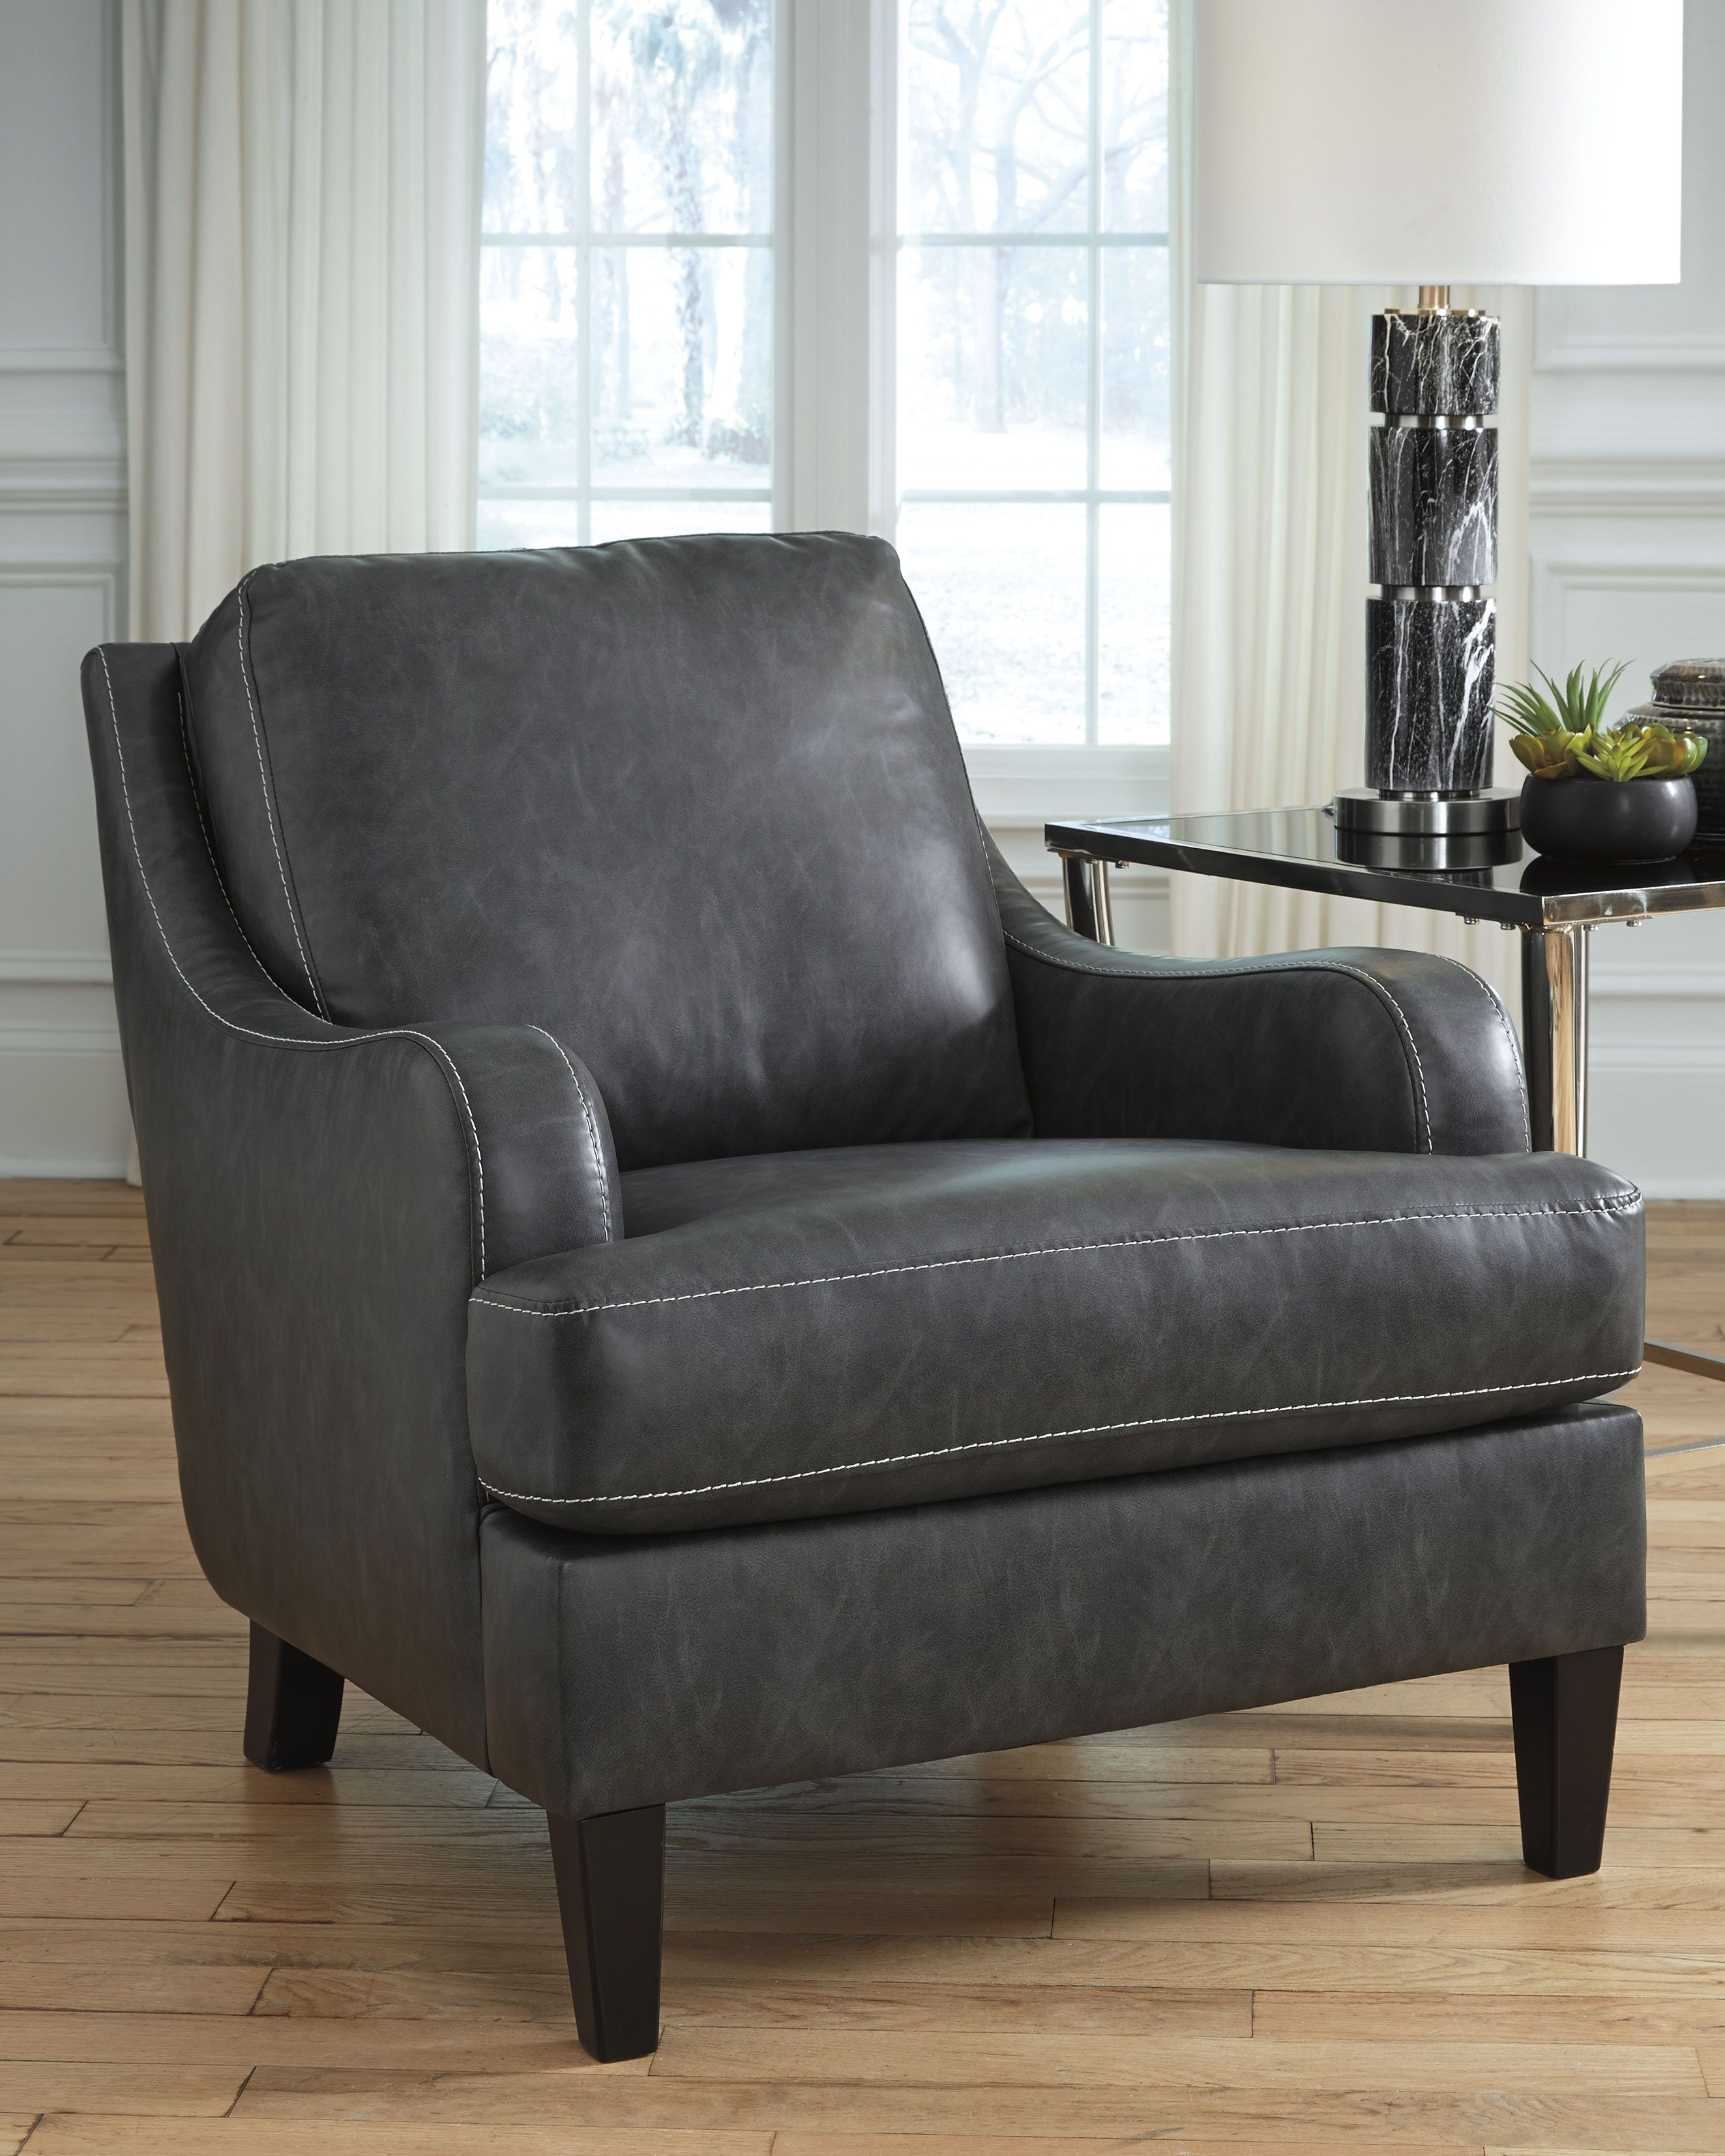 Tirolo Accent Chair Dark Gray Products In 2019 Pinterest